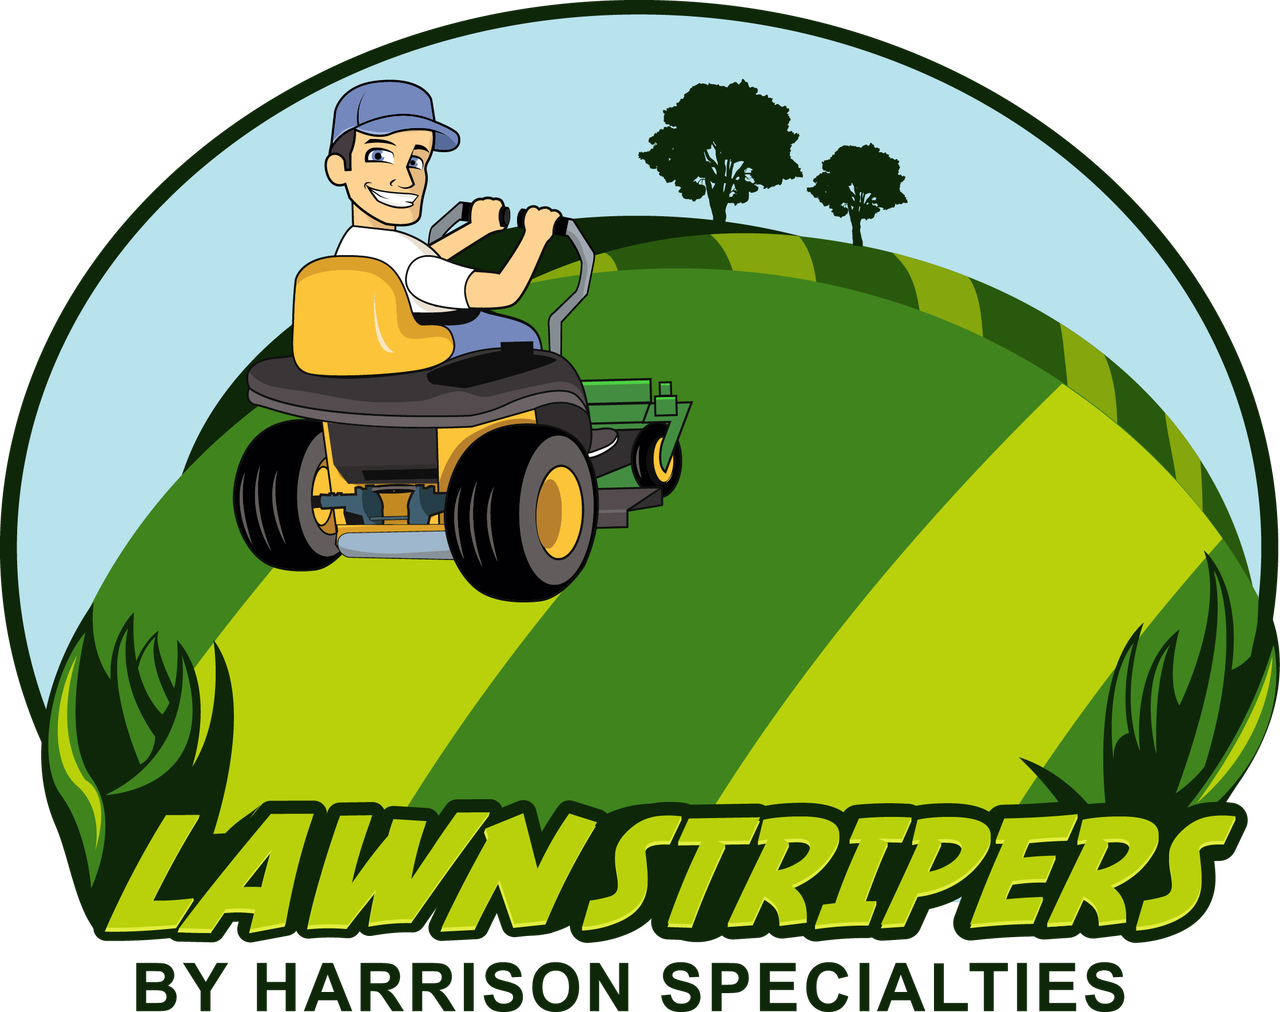 """Lawn Striping Kit for 2010 John Deere 950A with 60"""" 7 Iron deck & 2012 930A with 60"""" 7-iron MOD deck"""